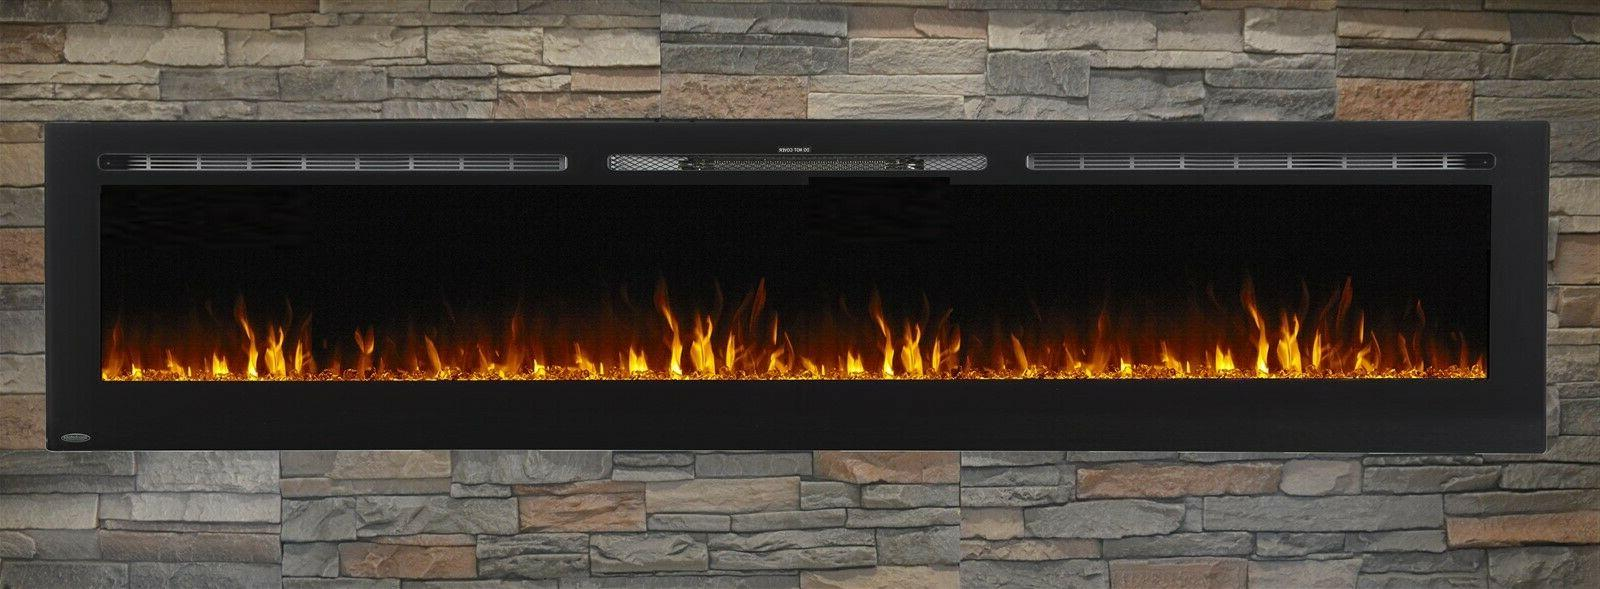 Sideline 100 80032 Recessed Fireplace